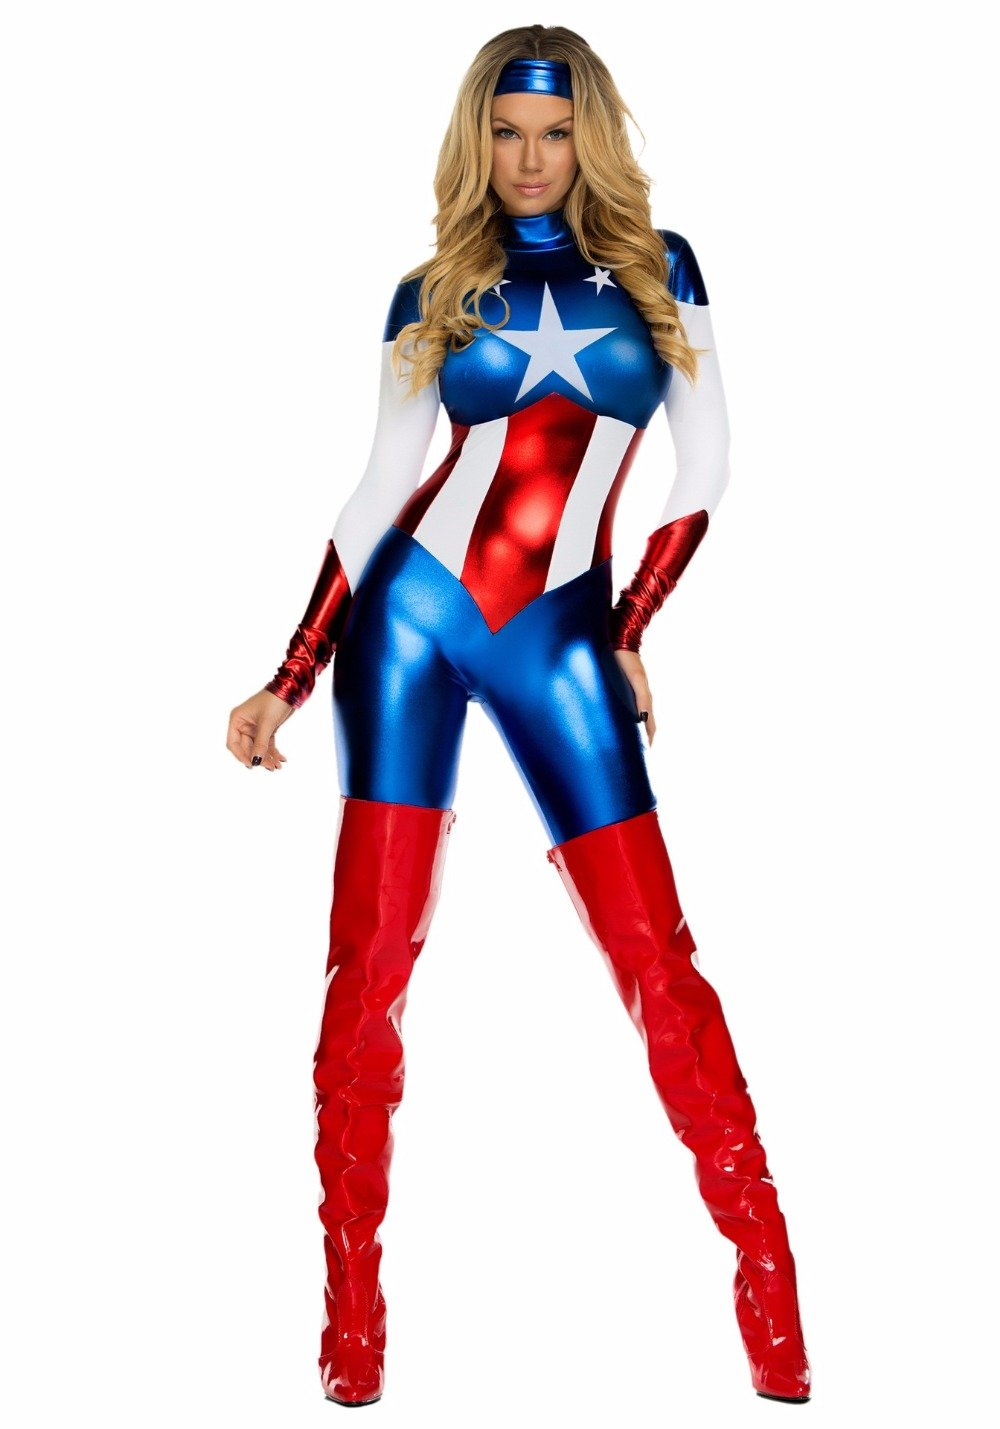 MOONIGHT Sexy Captain America Costume Women Halloween Carnival Cosplay Costume Jumpsuit Movie Avengers Lego Adult Costume